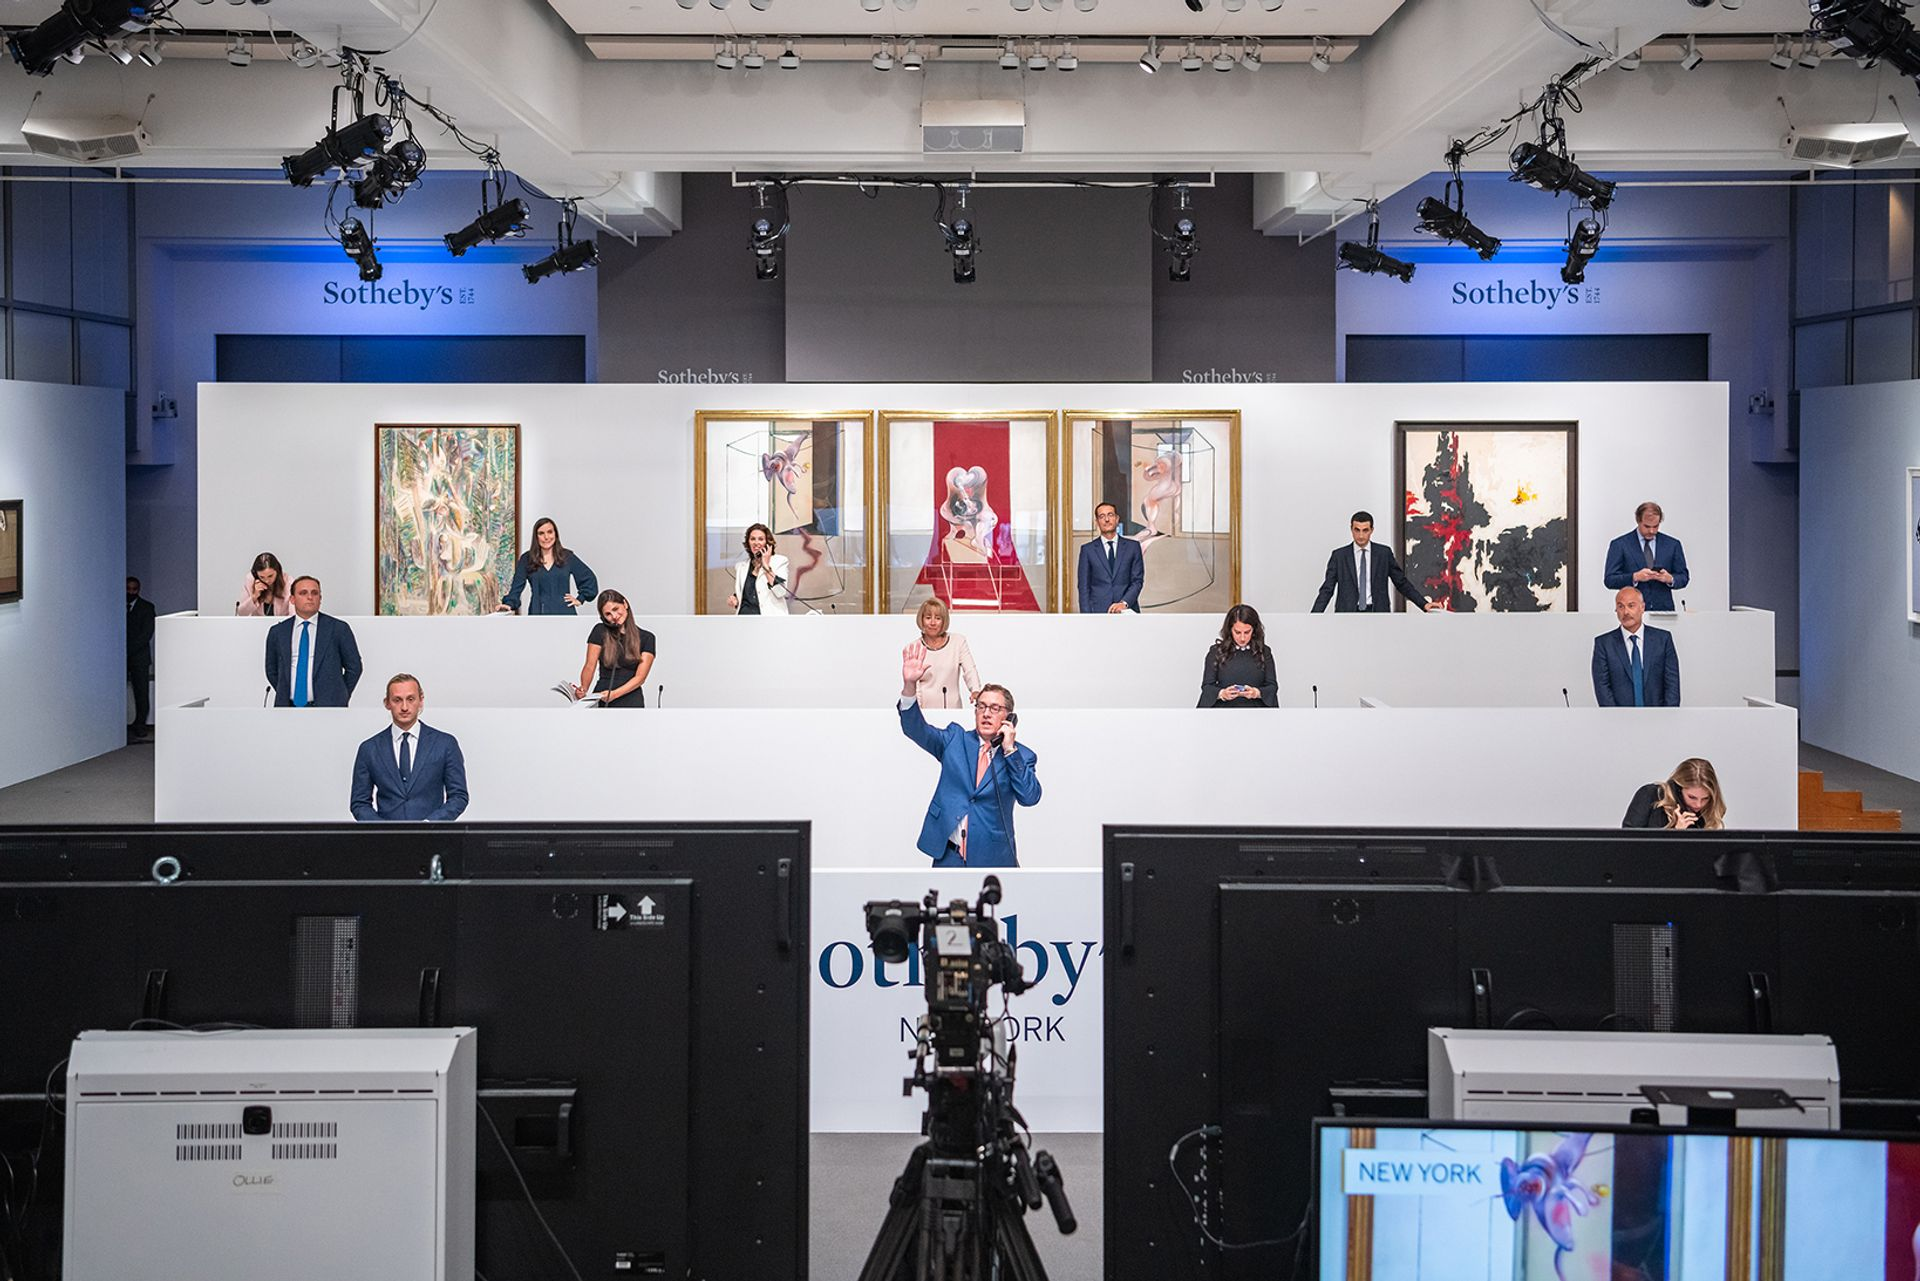 Specialists bidding in New York during Sotheby's Contemporary evening sale in June © Julian Cassady Photography LTD